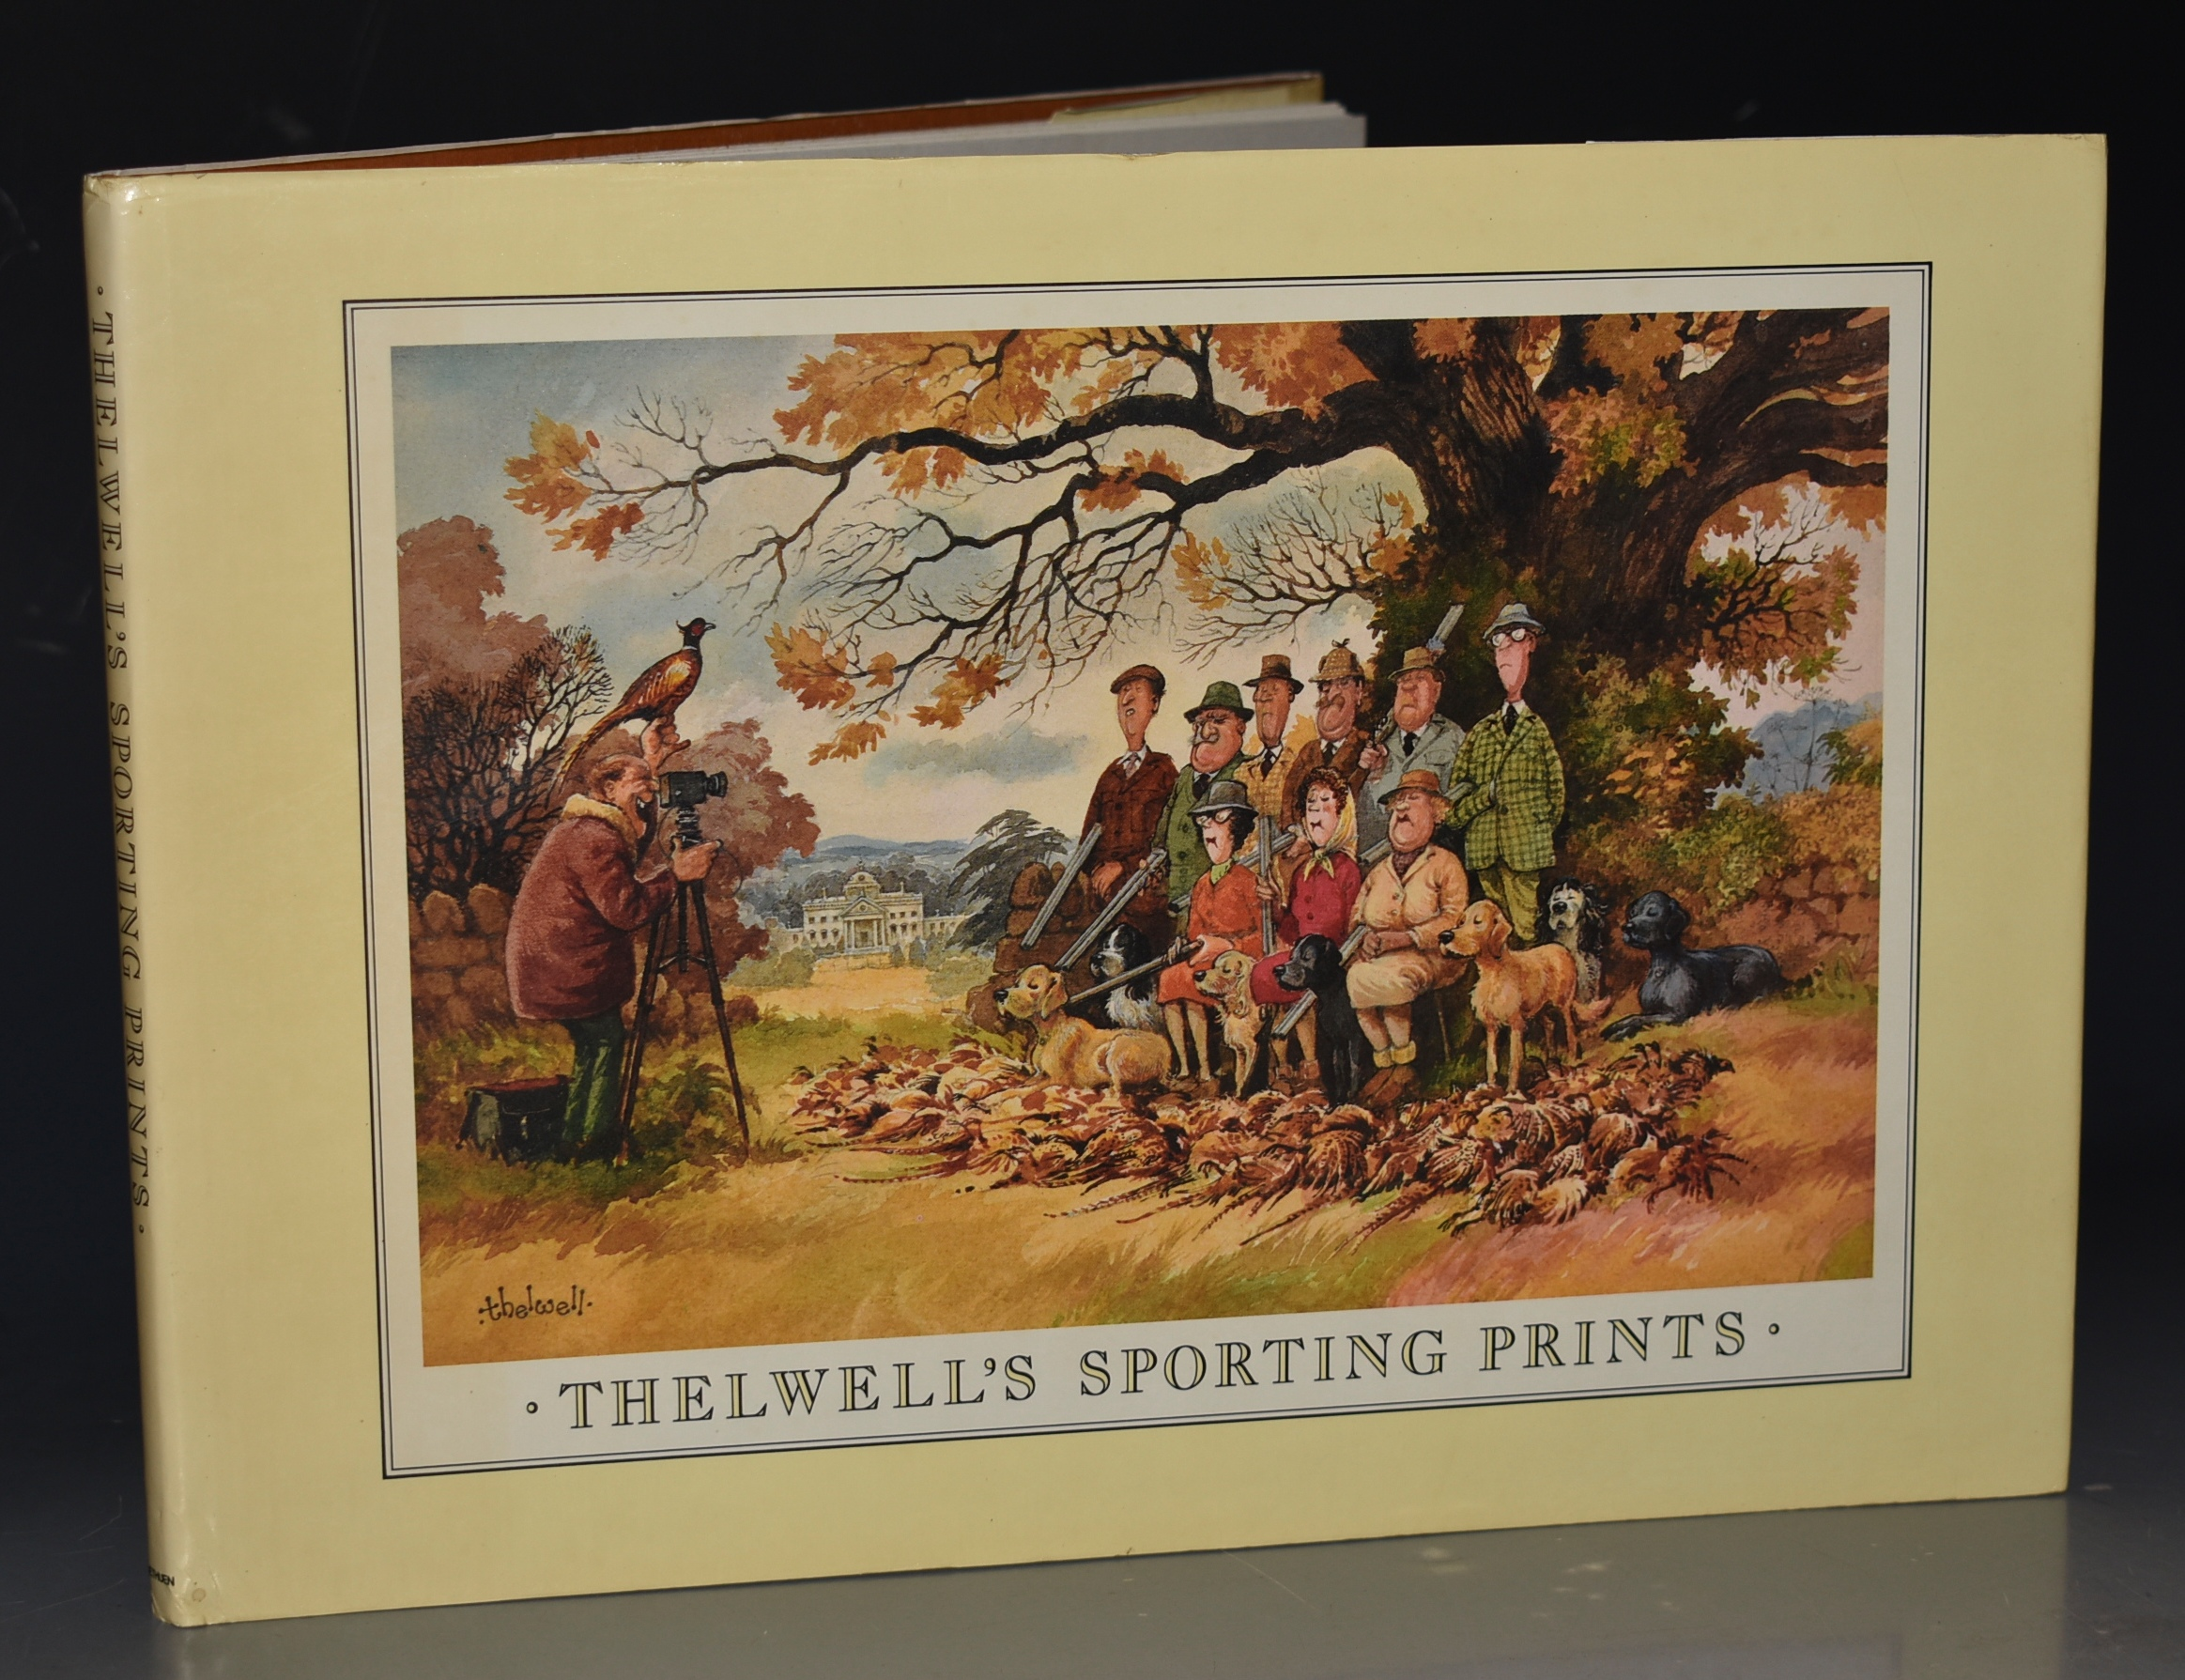 Image for Thelwell's Sporting Prints. Signed copy.